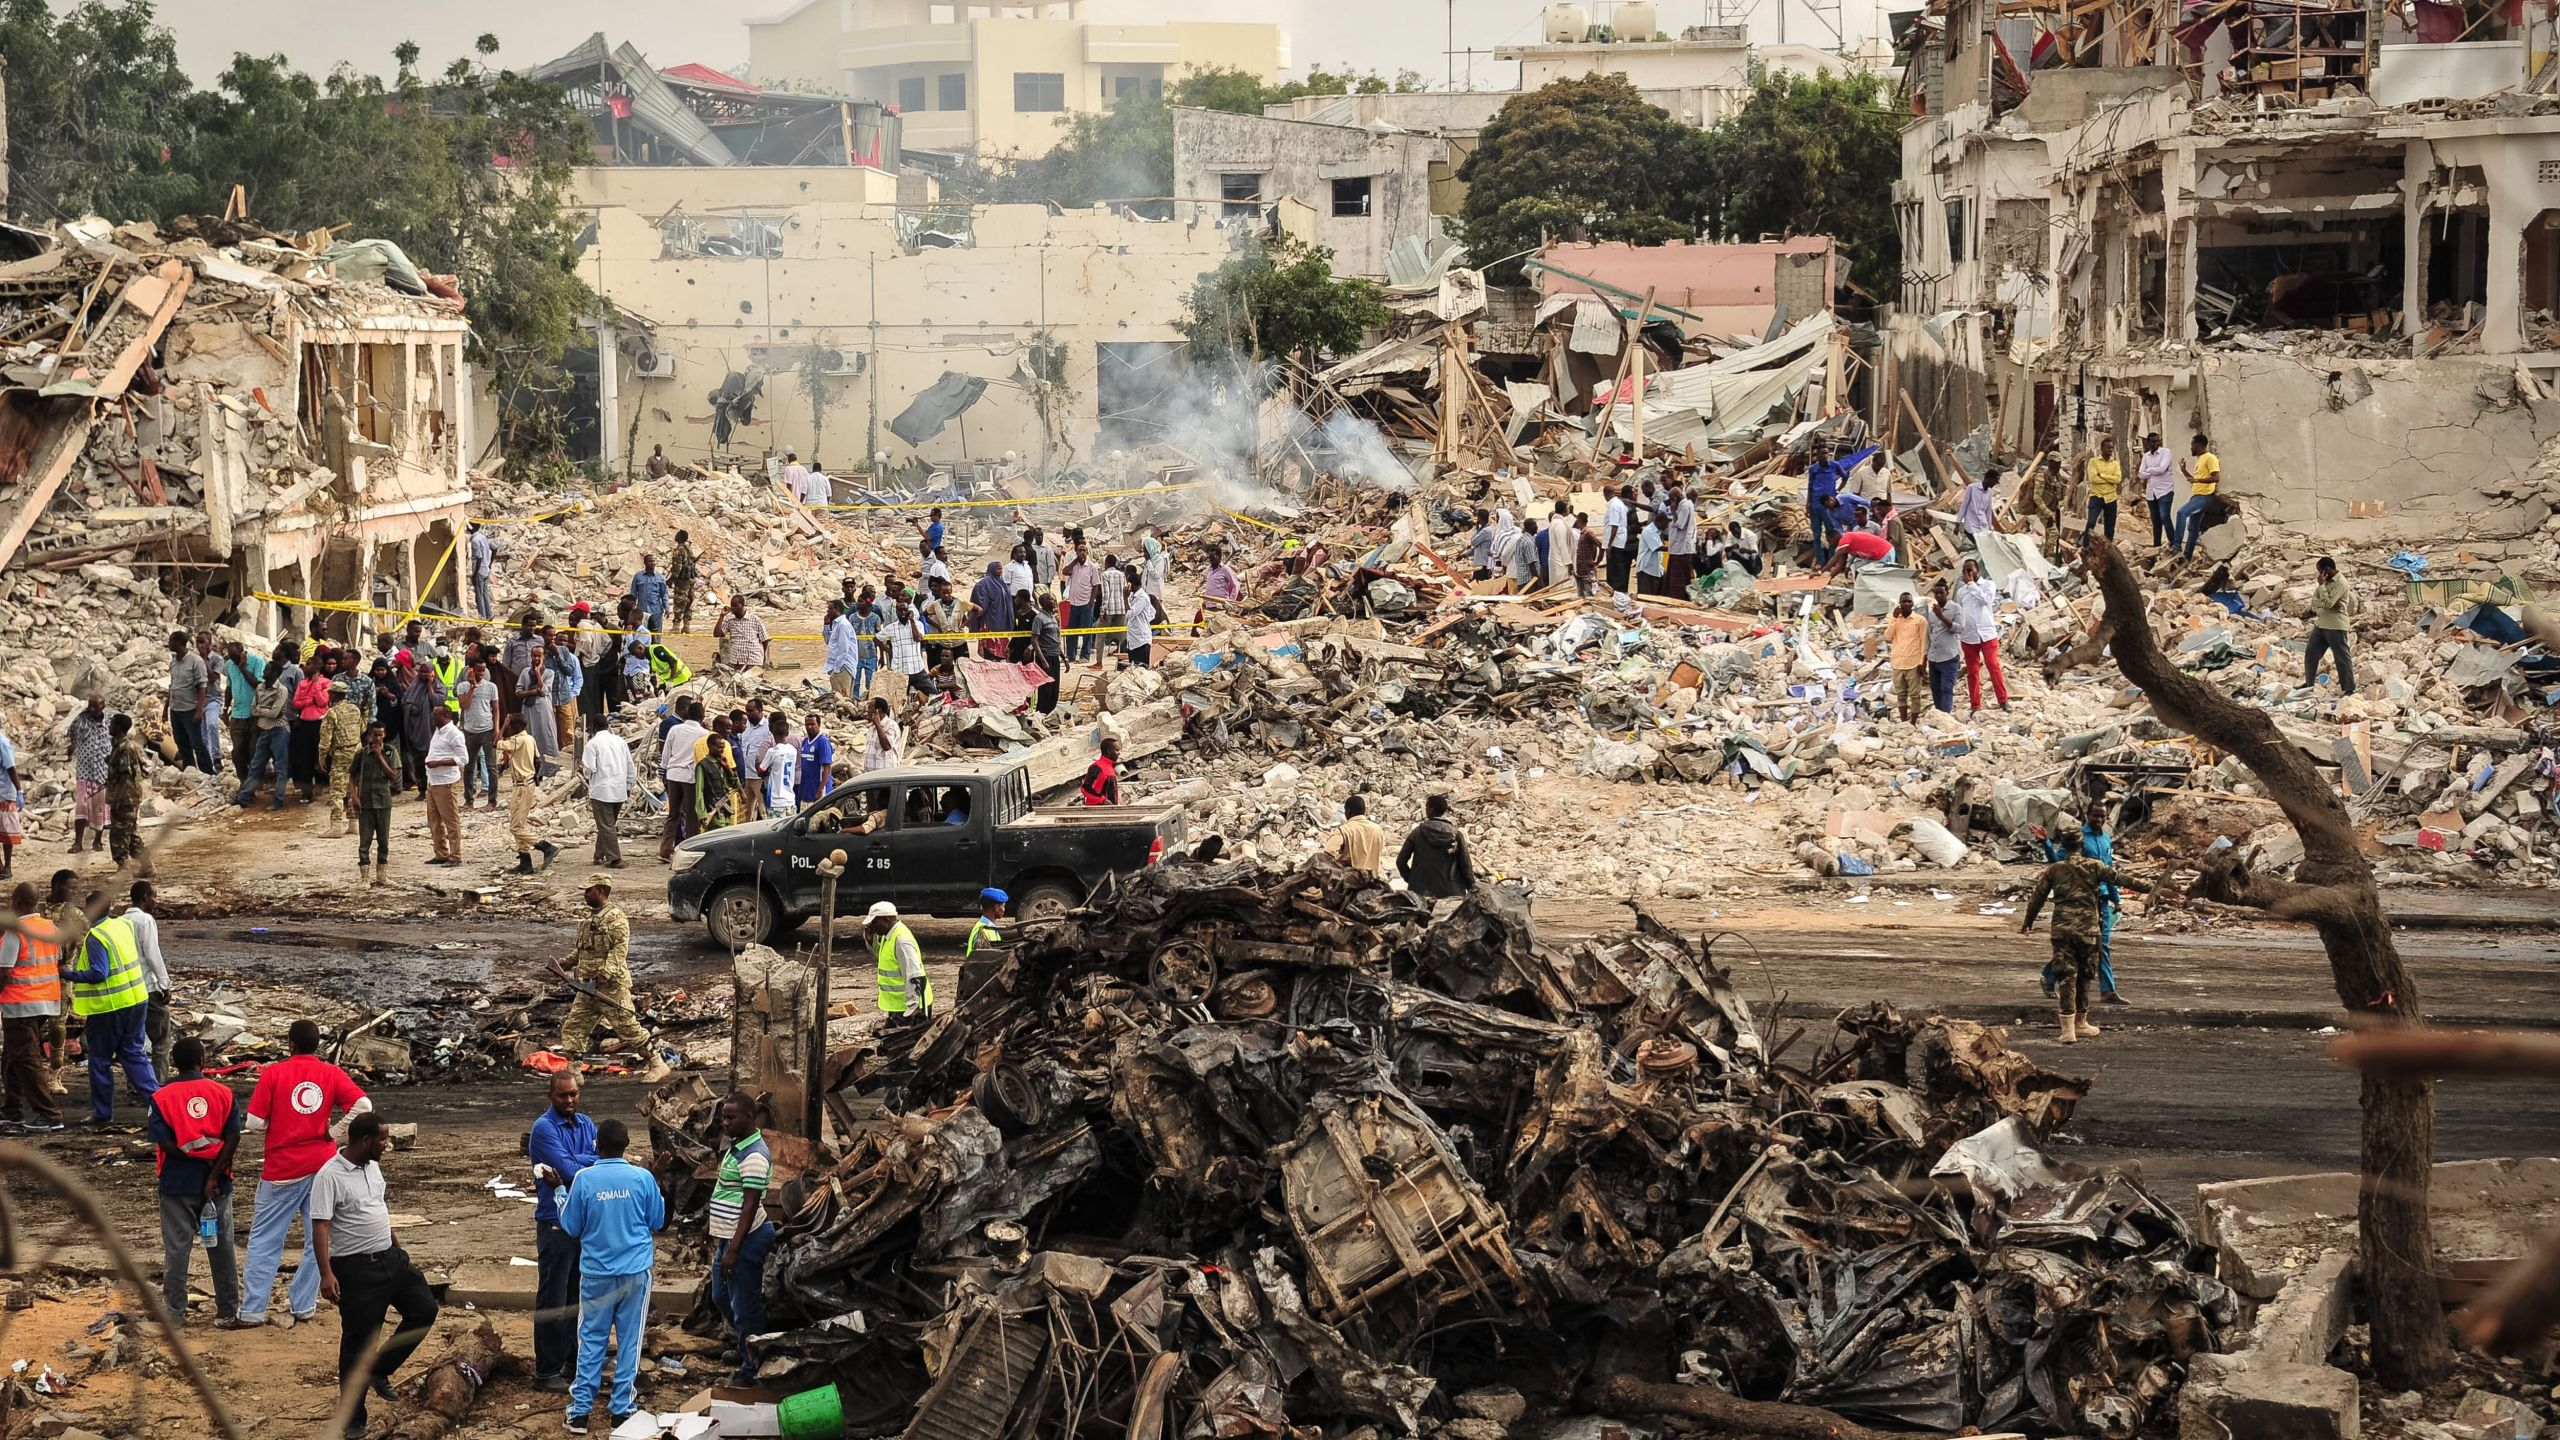 A picture taken on October 15, 2017 shows a general view of the scene of the explosion of a truck bomb in the centre of Mogadishu. (Credit: MOHAMED ABDIWAHAB/AFP/Getty Images)